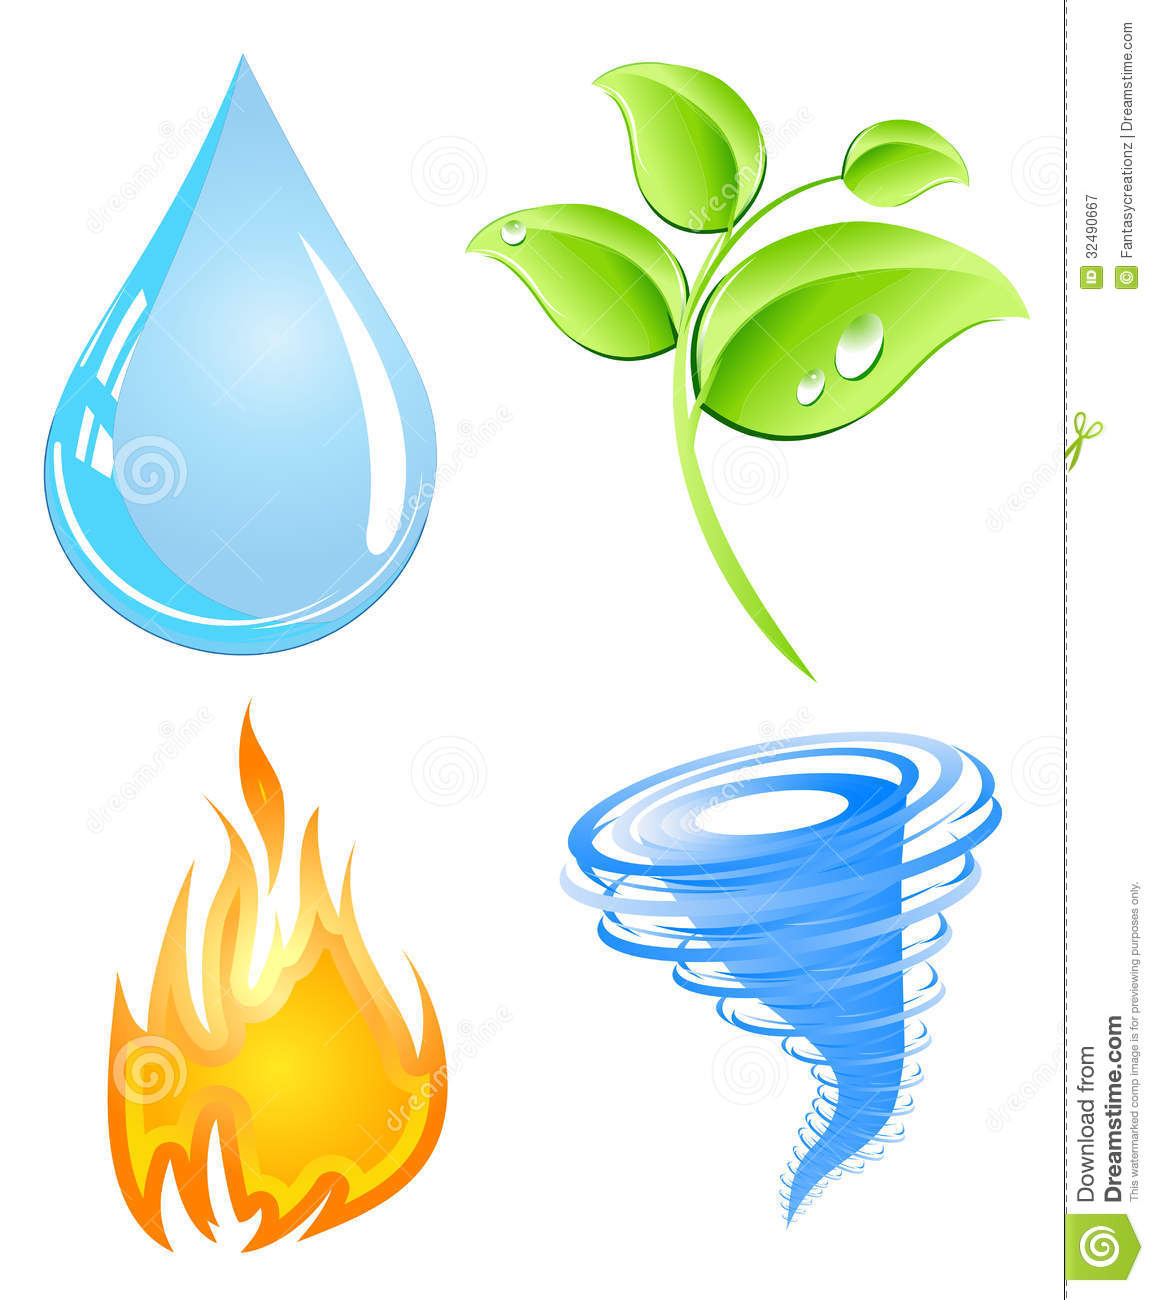 Elements clipart  Element Cartoons Clipart Earth